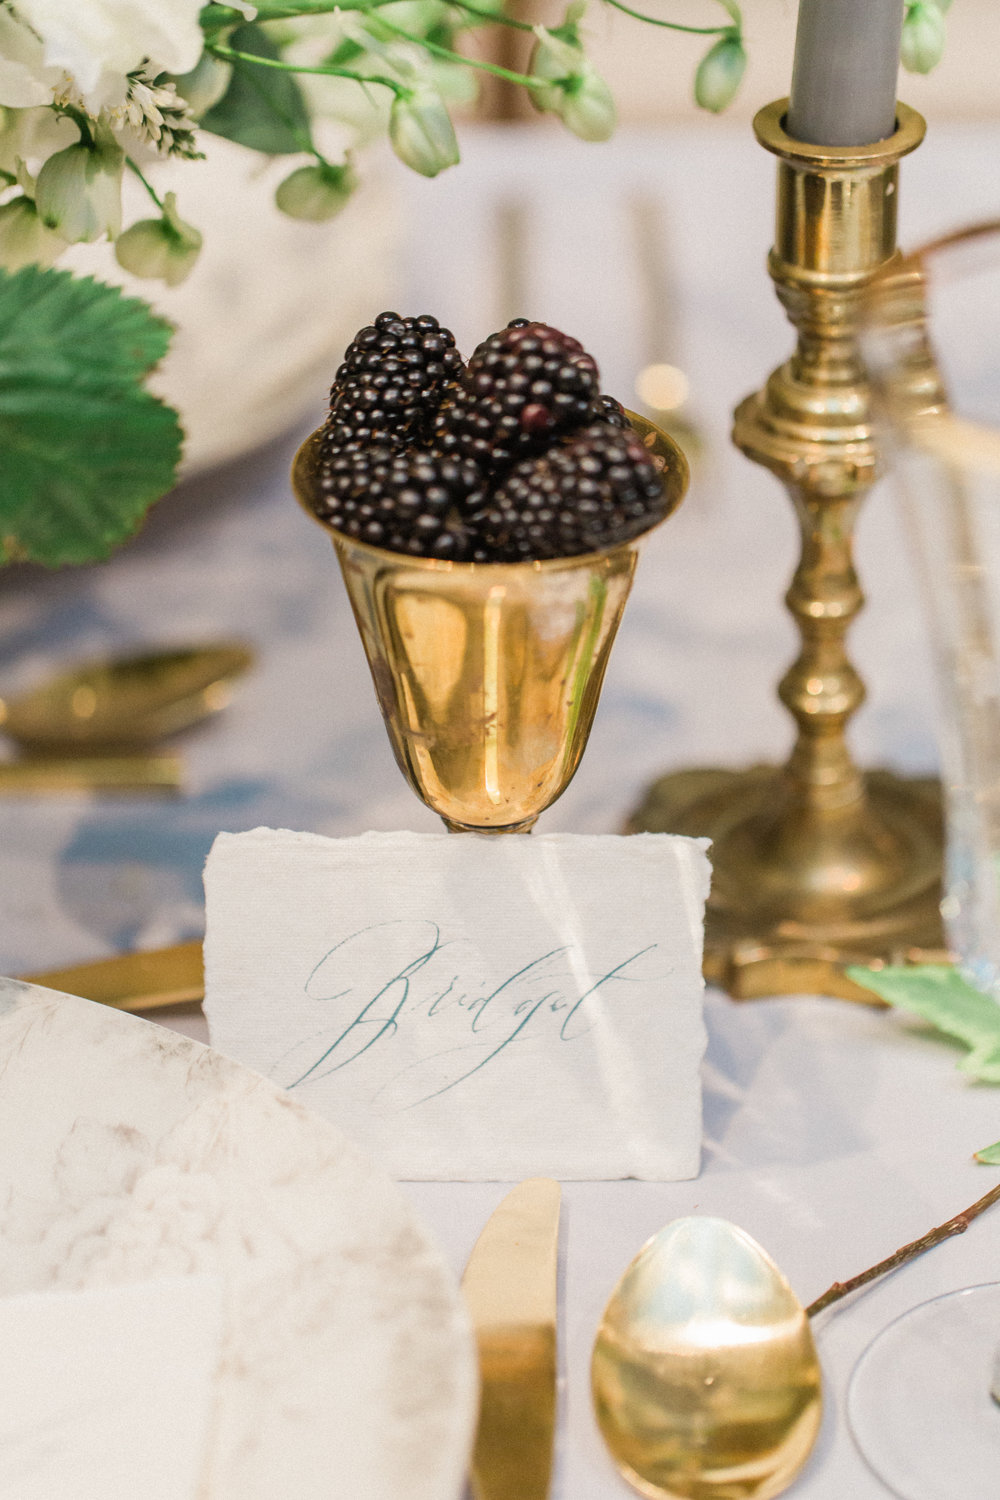 calligraphy-romantic-berries-gold-guests-namecard-gift-detail-photography-florals-by-maxit-flower-design